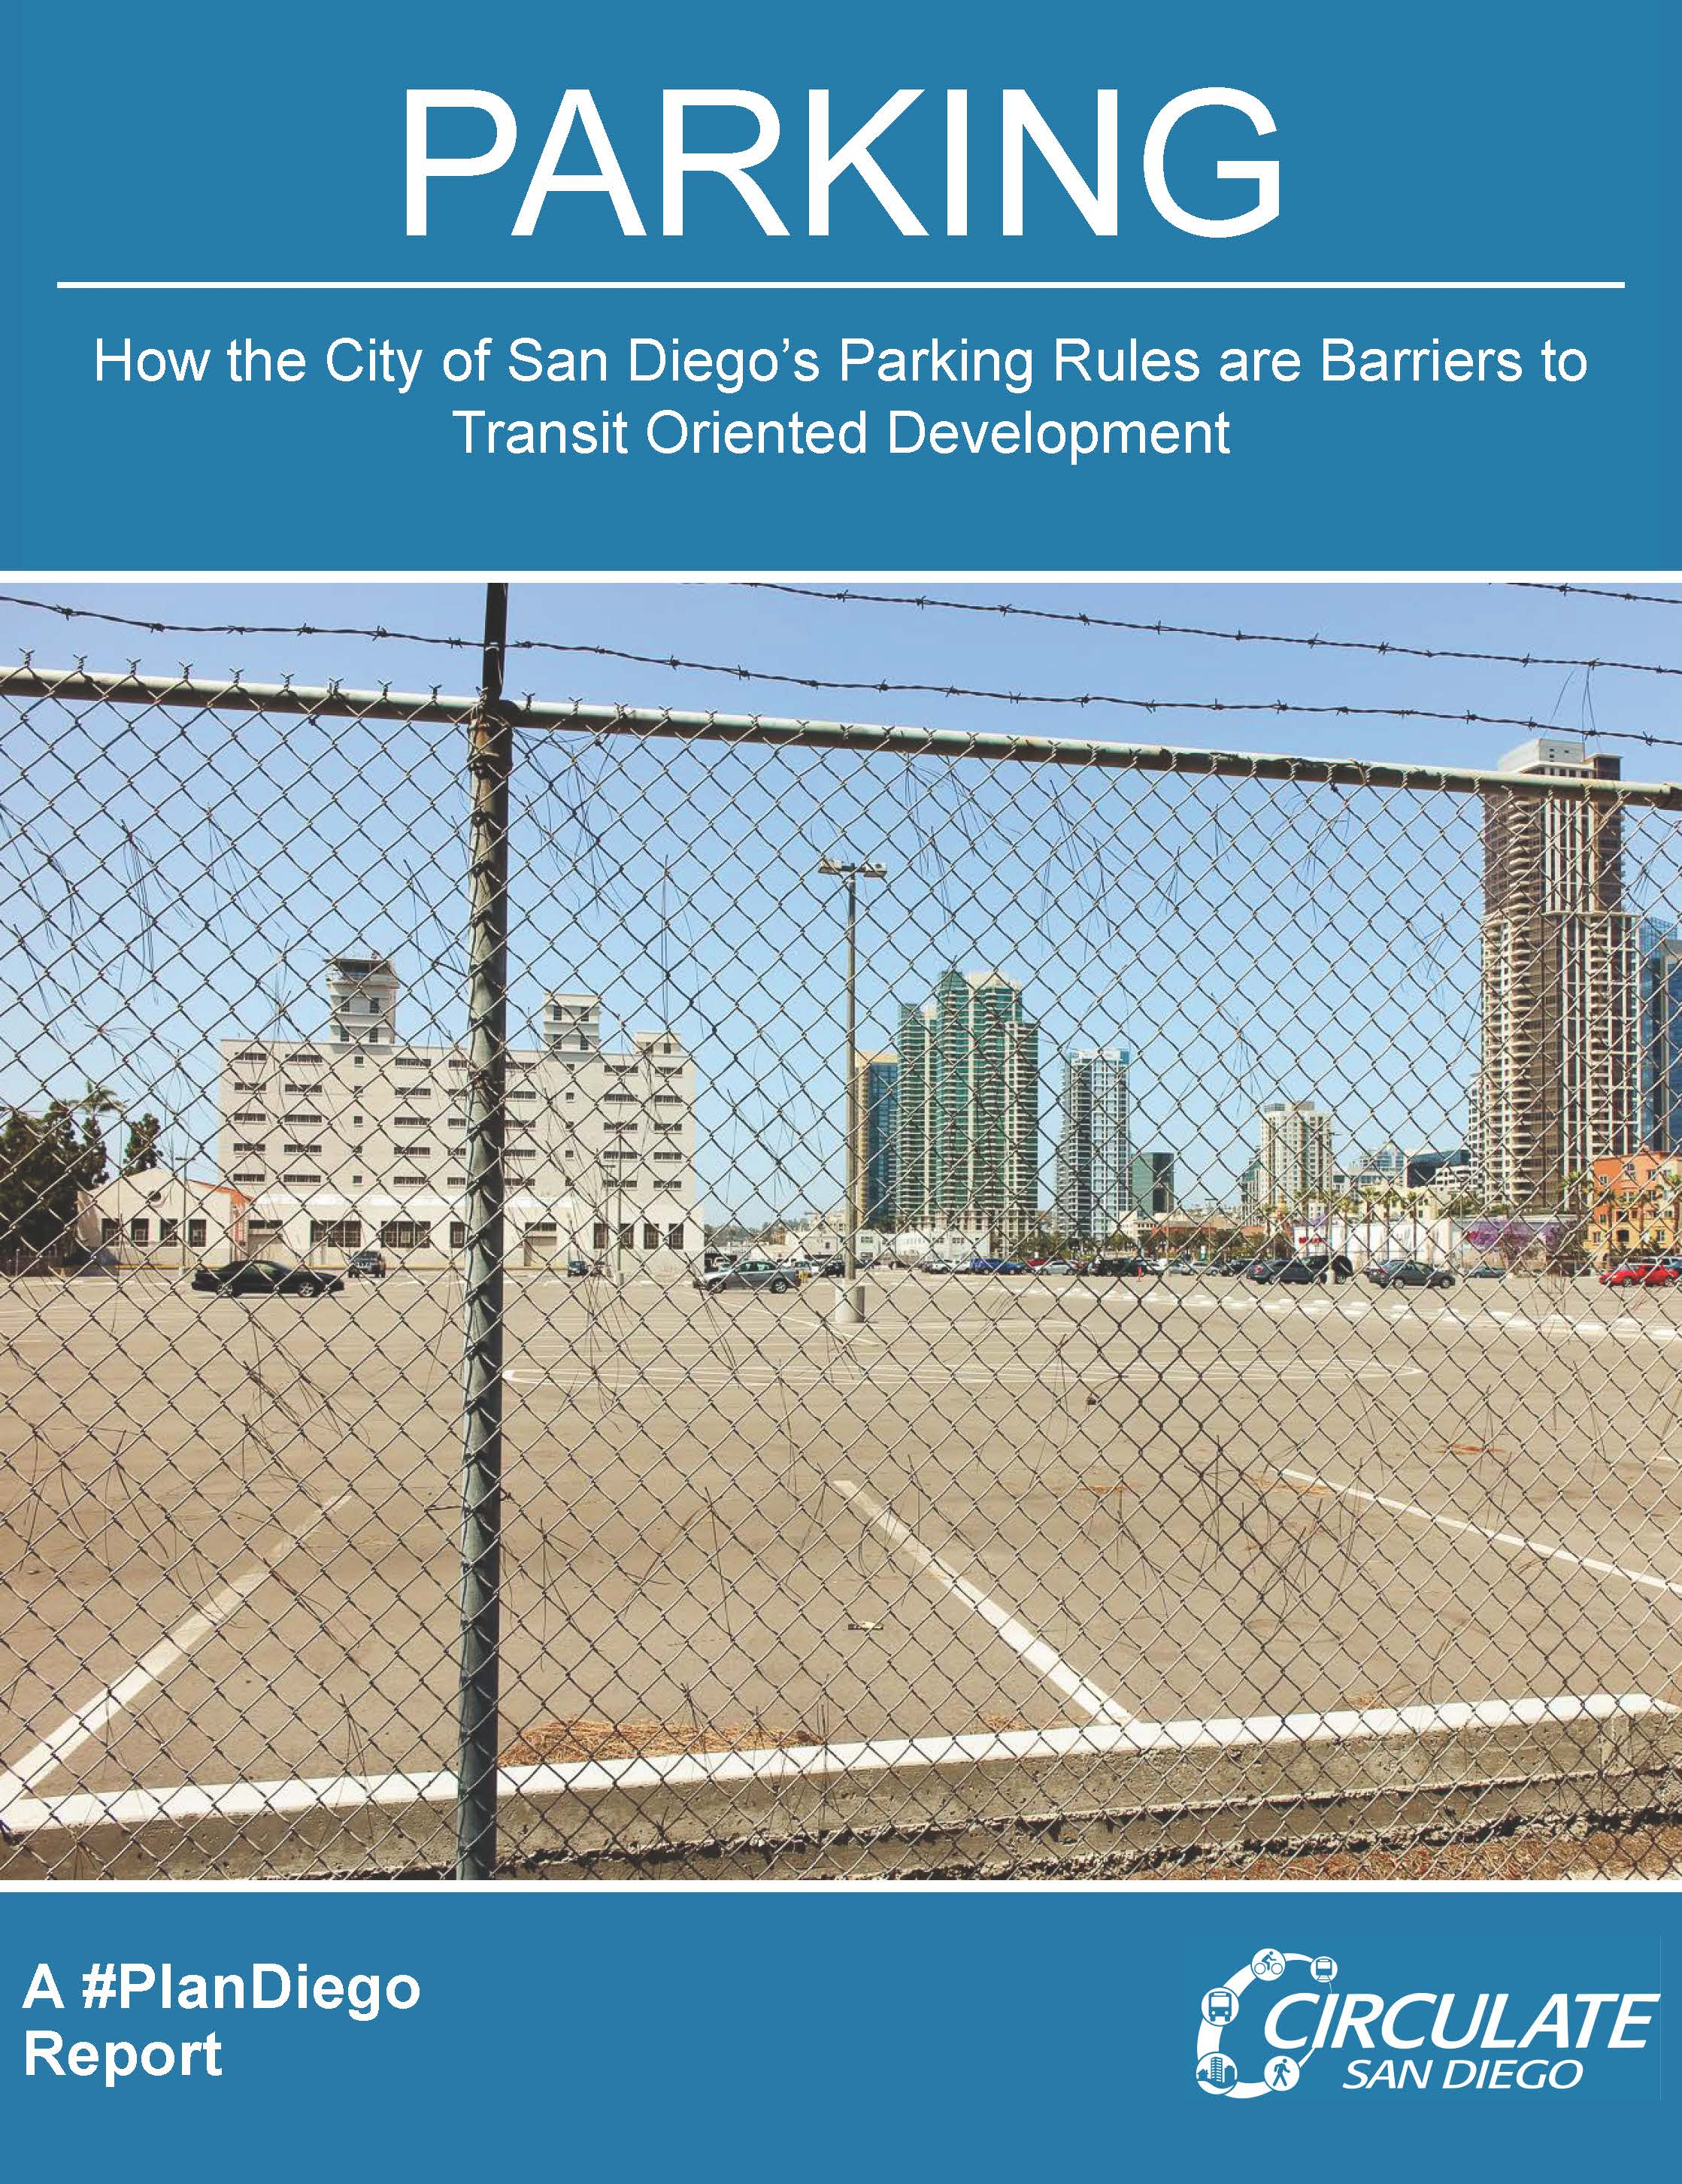 Report-_Circulate_San_Diego_Releases_New_Report_on_the_City_of_San_Diego's_Parking_Rules.jpg